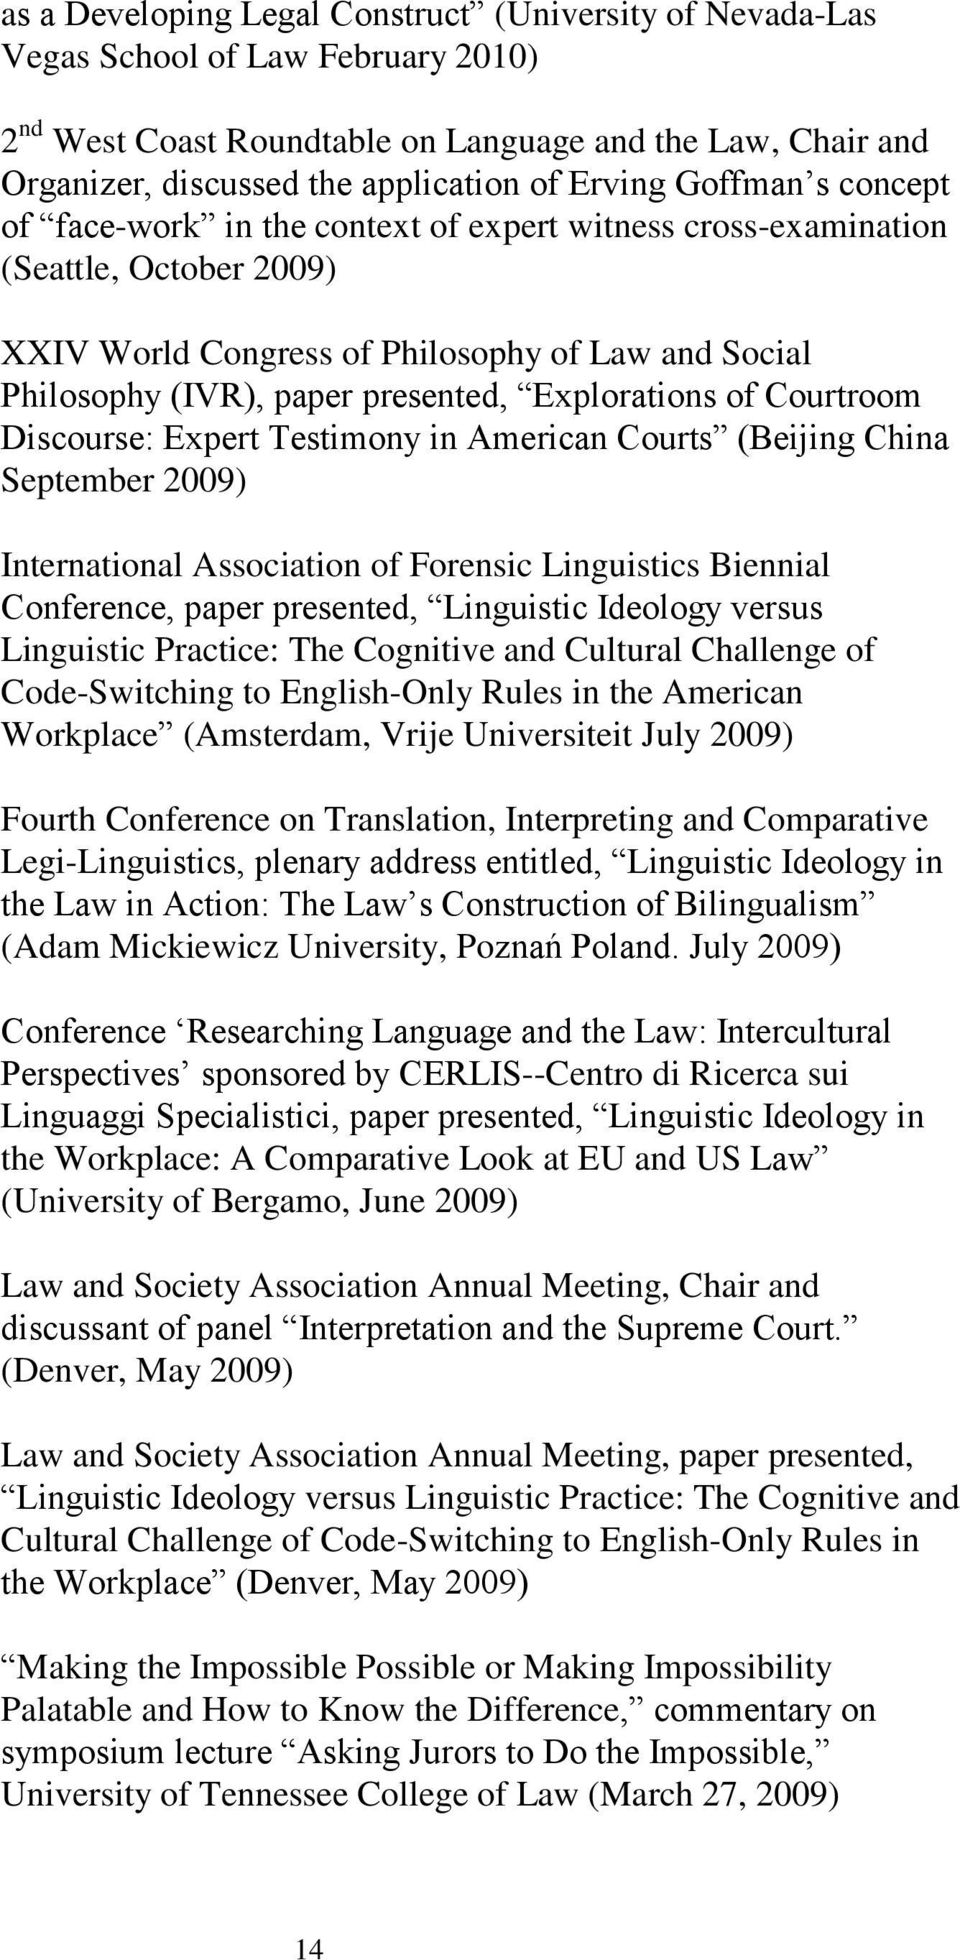 Explorations of Courtroom Discourse: Expert Testimony in American Courts (Beijing China September 2009) International Association of Forensic Linguistics Biennial Conference, paper presented,